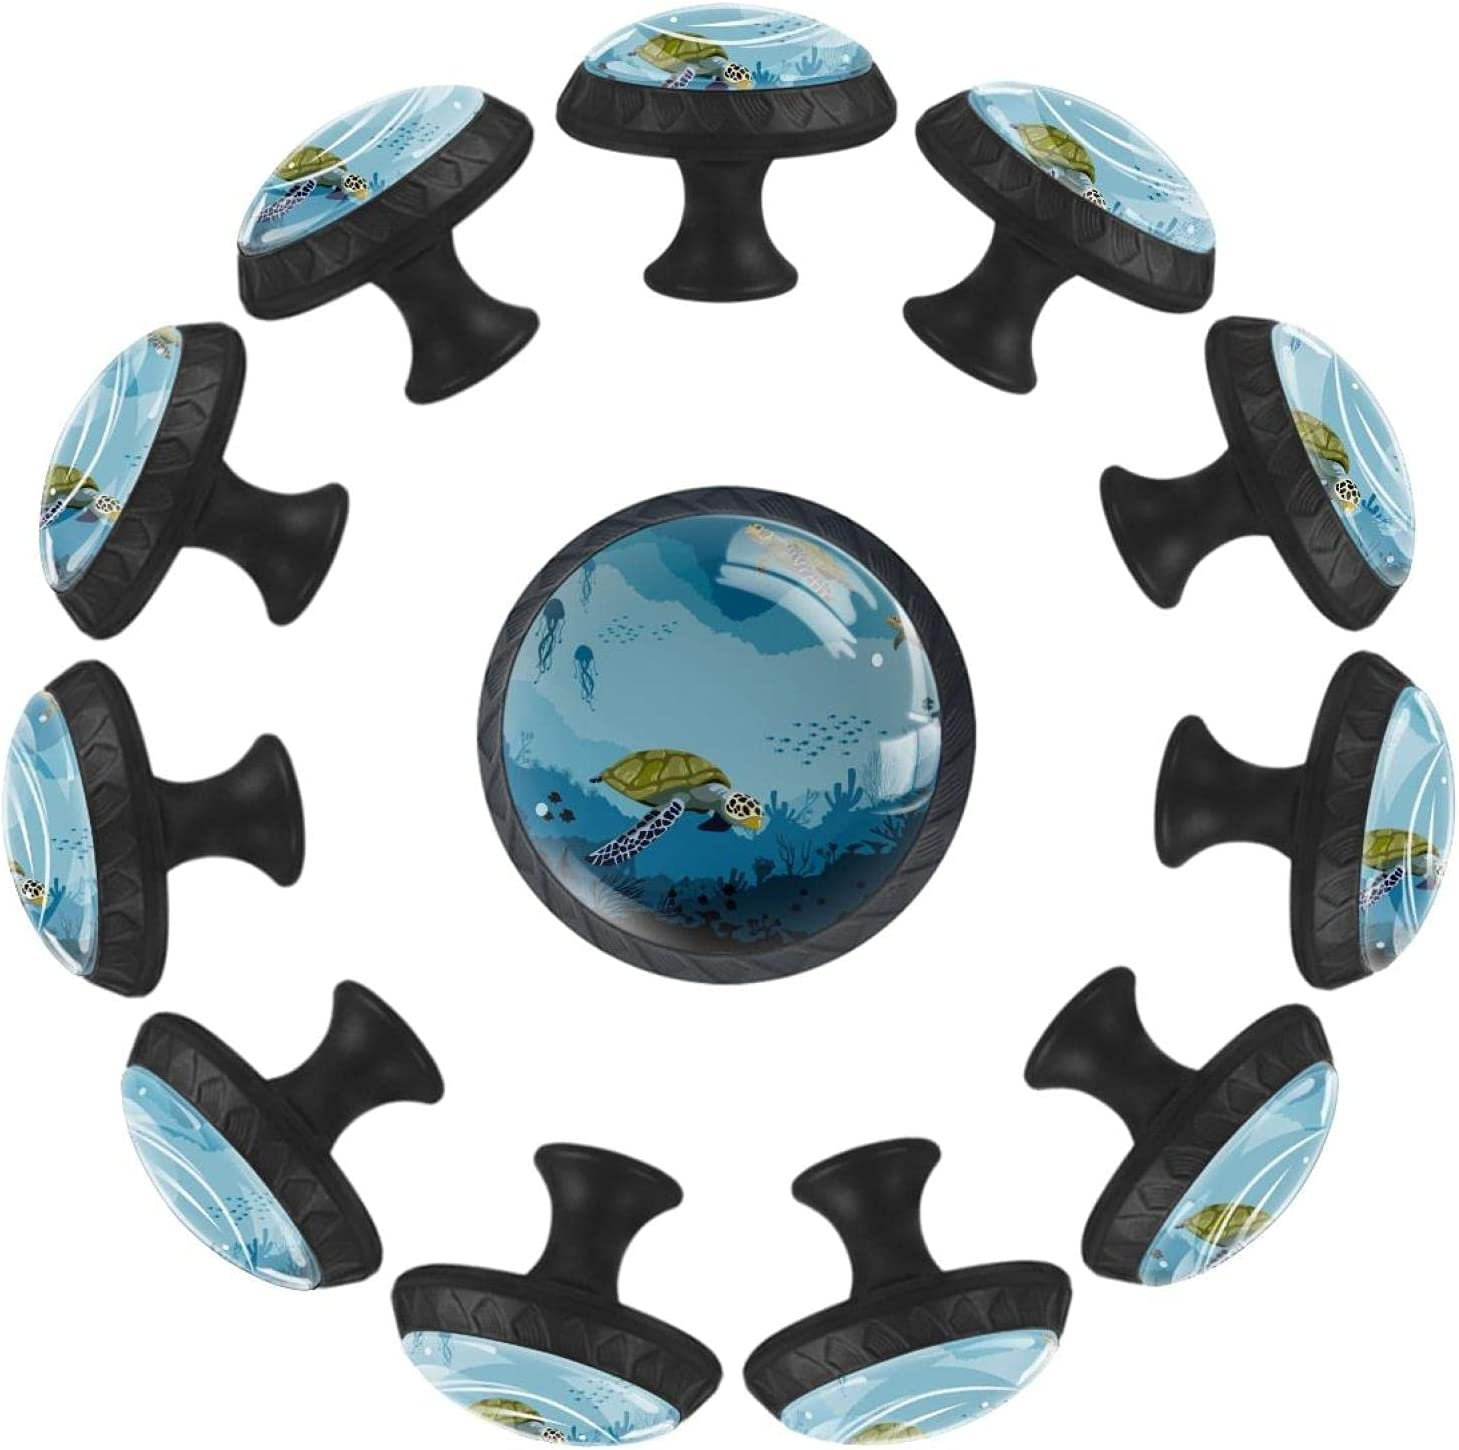 12 Pieces Turtle Underwater Blue Nippon regular agency Knobs Drawers for Dresser Glass service